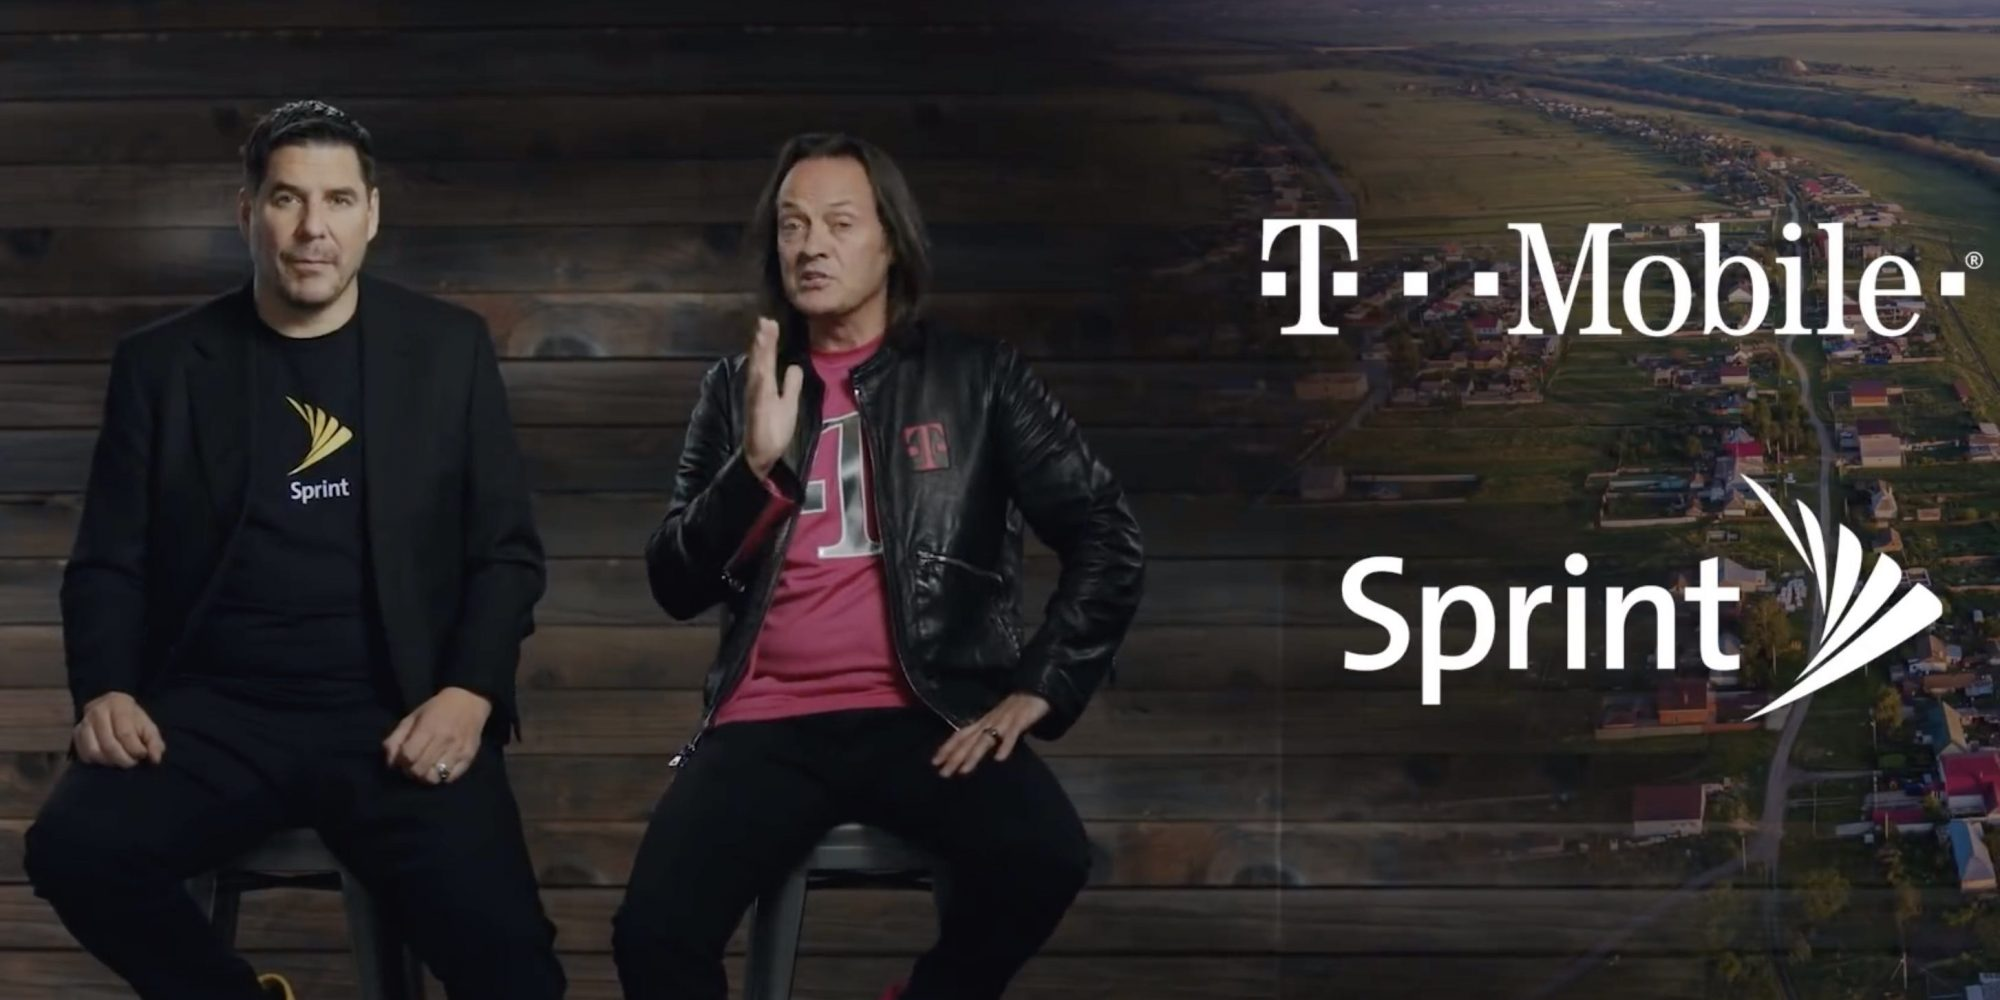 T-Mobile updates 5G website to hype Sprint merger and rural